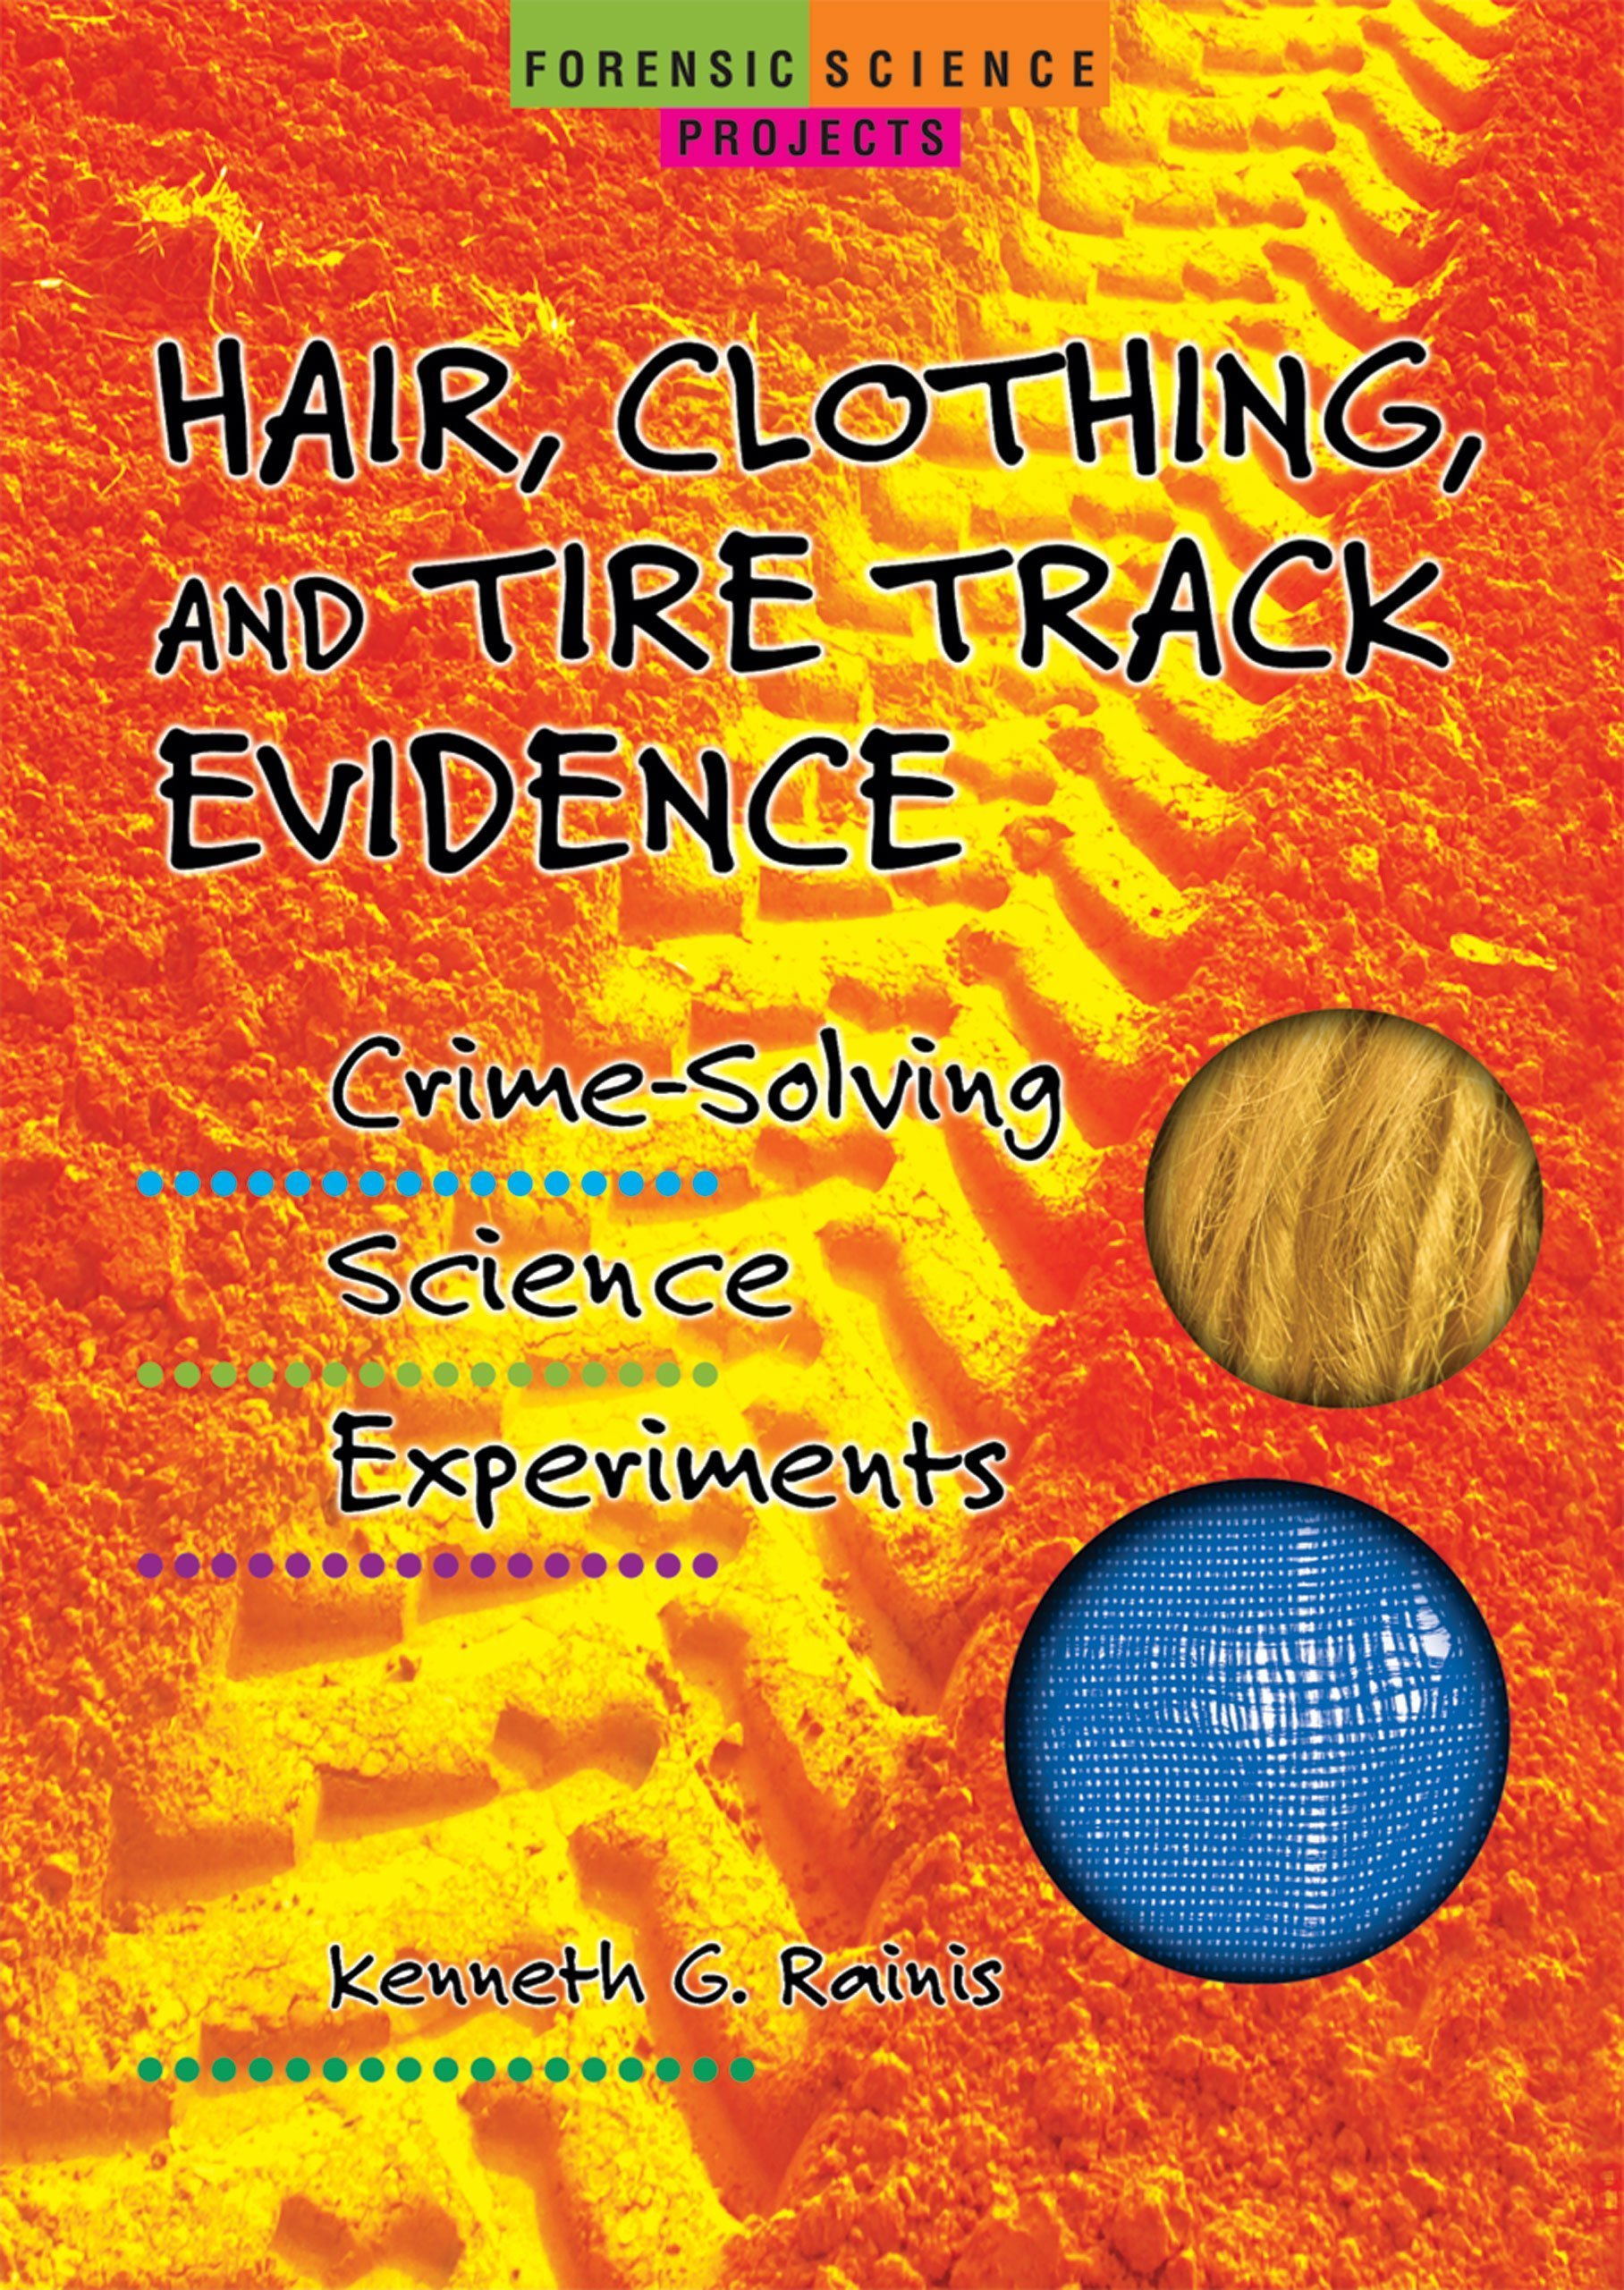 Hair, Clothing, and Tire Track Evidence: Crime-Solving Science Experiments (Forensic Science Projects)